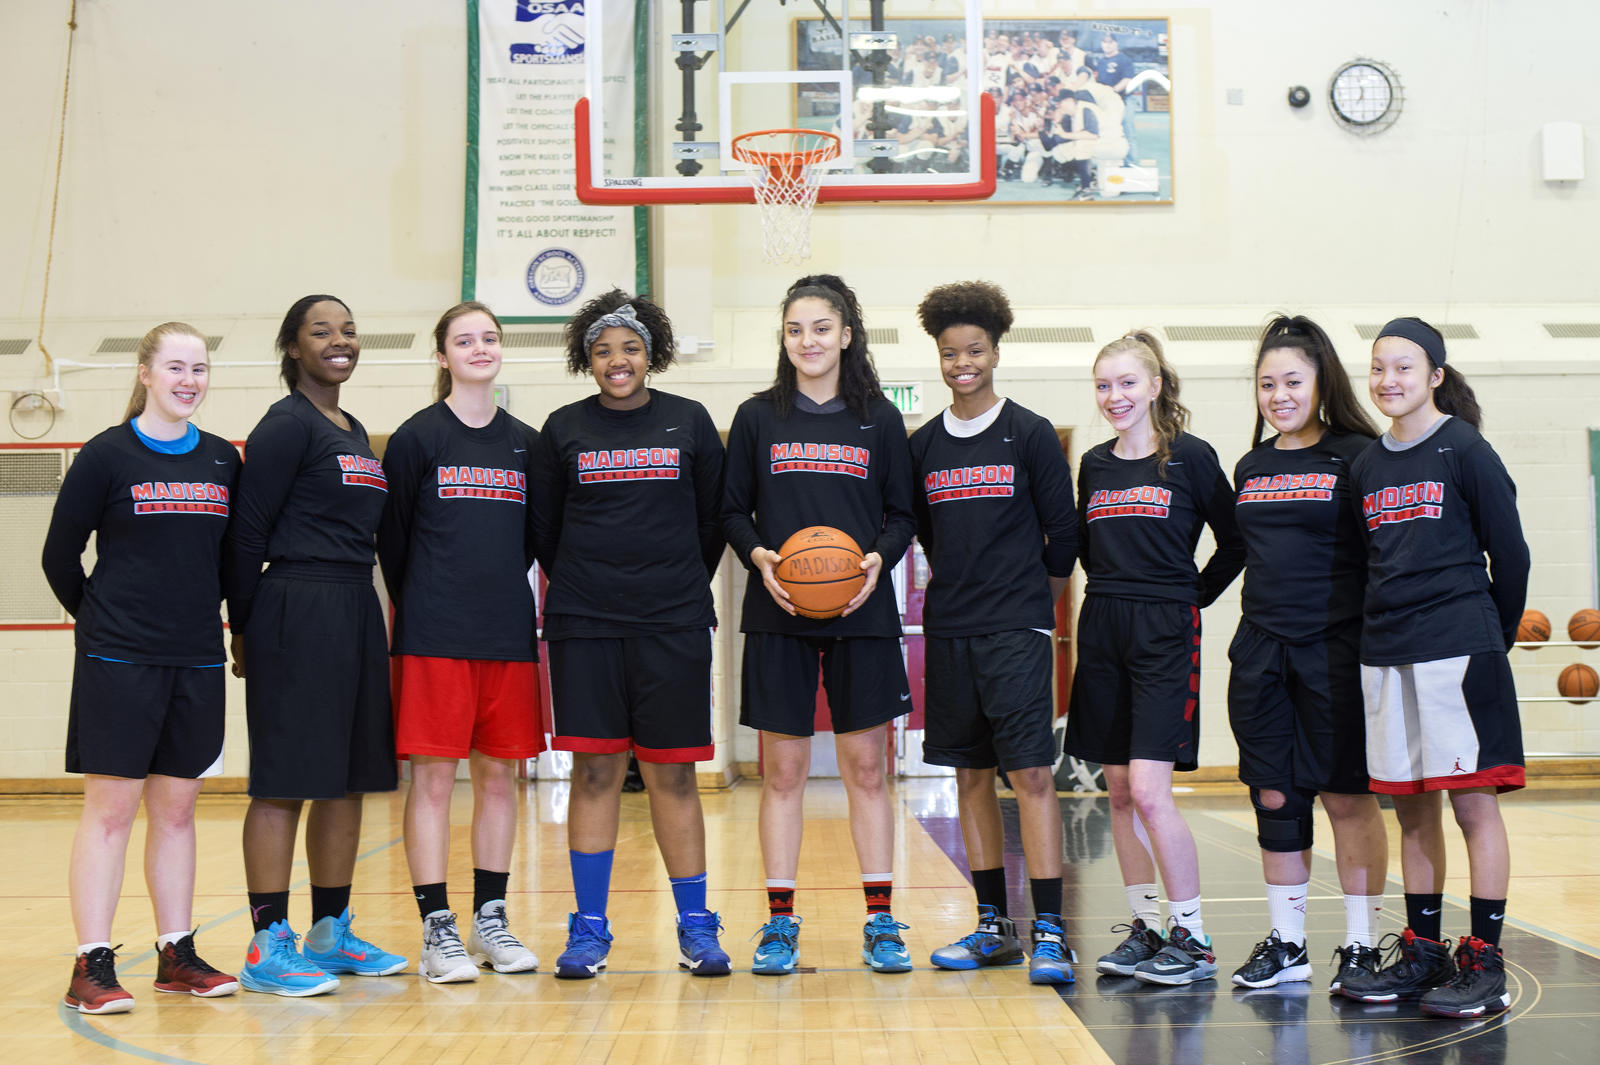 The Madison High School girl s basketball team will use their NCIF grant to  go towards strength 52bcf9a6f7ec